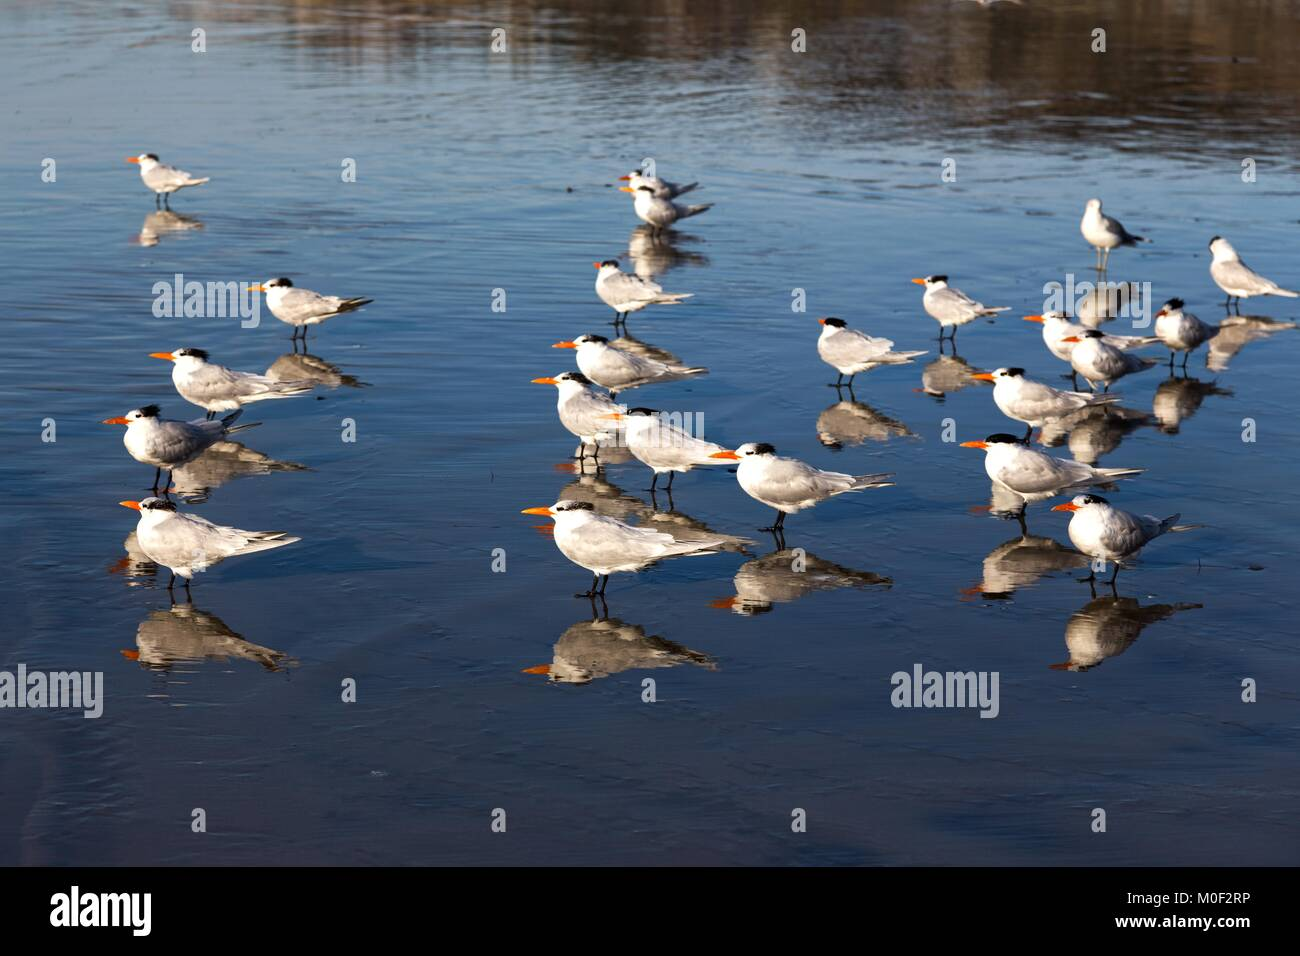 Flock of Seagull Birds Watching Low Tide on La Jolla Shores Pacific Ocean Beach at Scripps Institute of Oceanography, - Stock Image